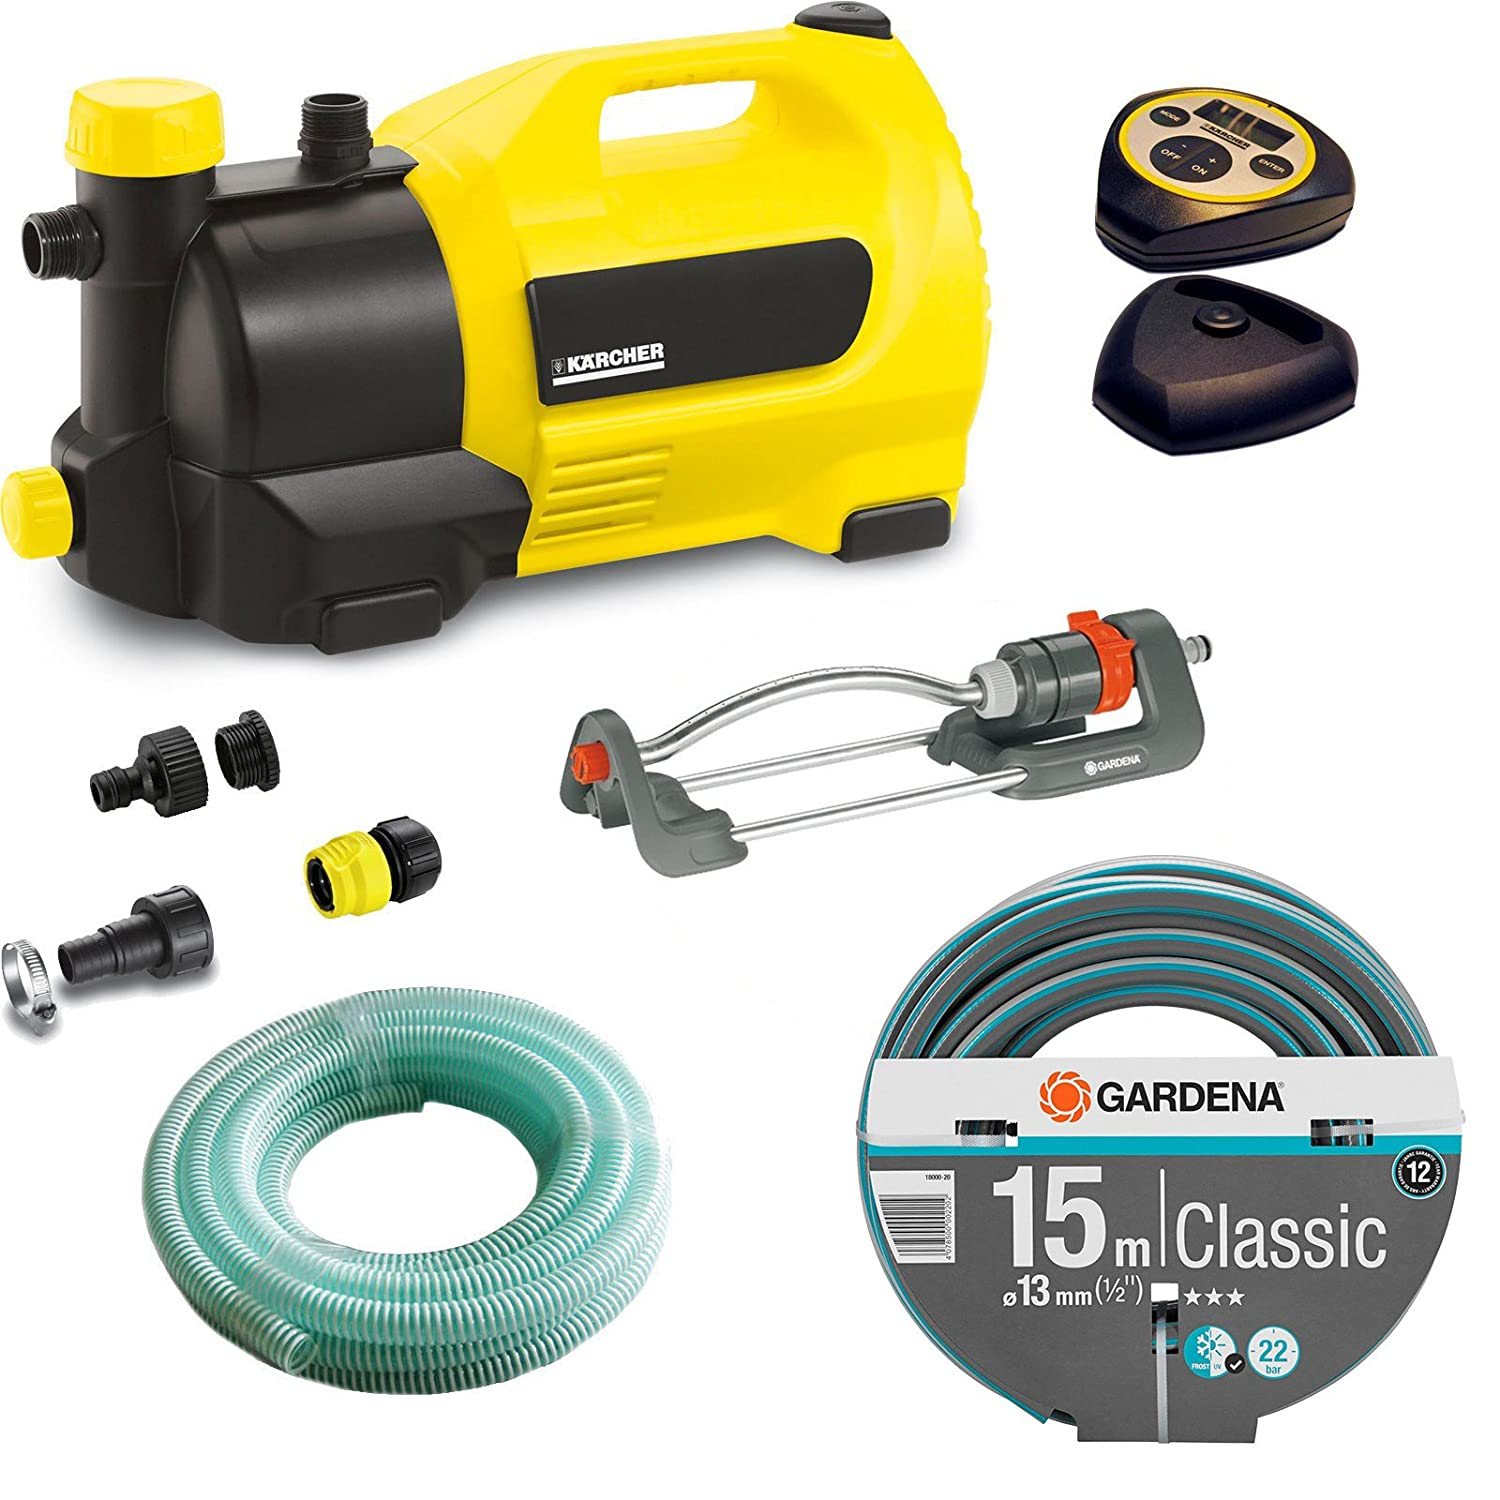 Karcher GP 50 MC Surface Water Pump with Garden Hose & Oscillating Sprinkler Kit 240v